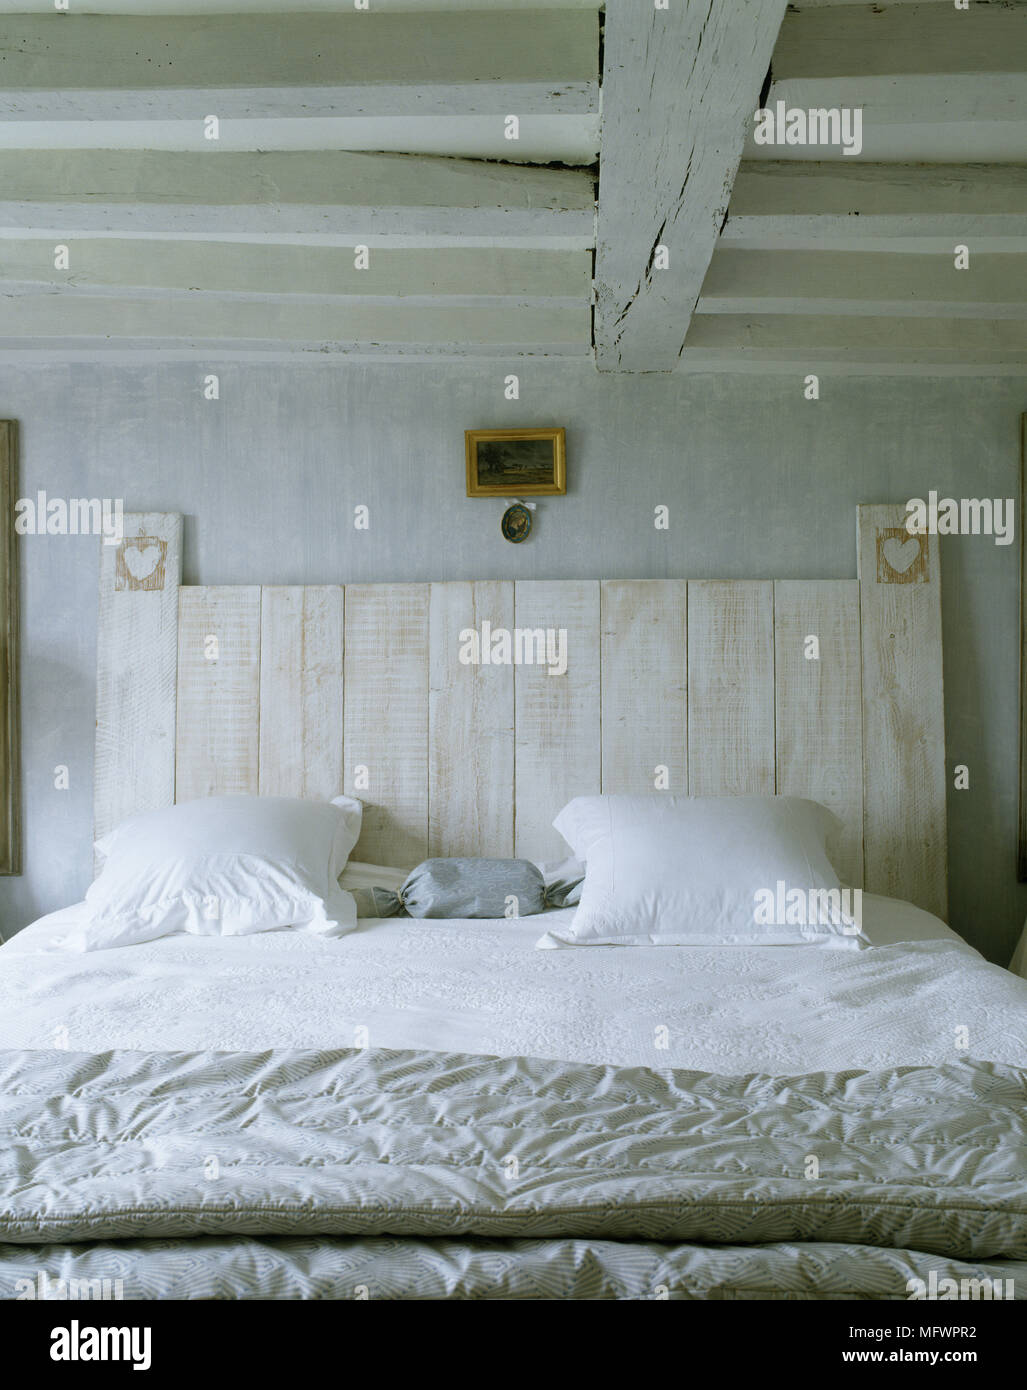 Rustic Bedroom With Double Bed With White Linen And Wooden Headboard Stock Photo Alamy